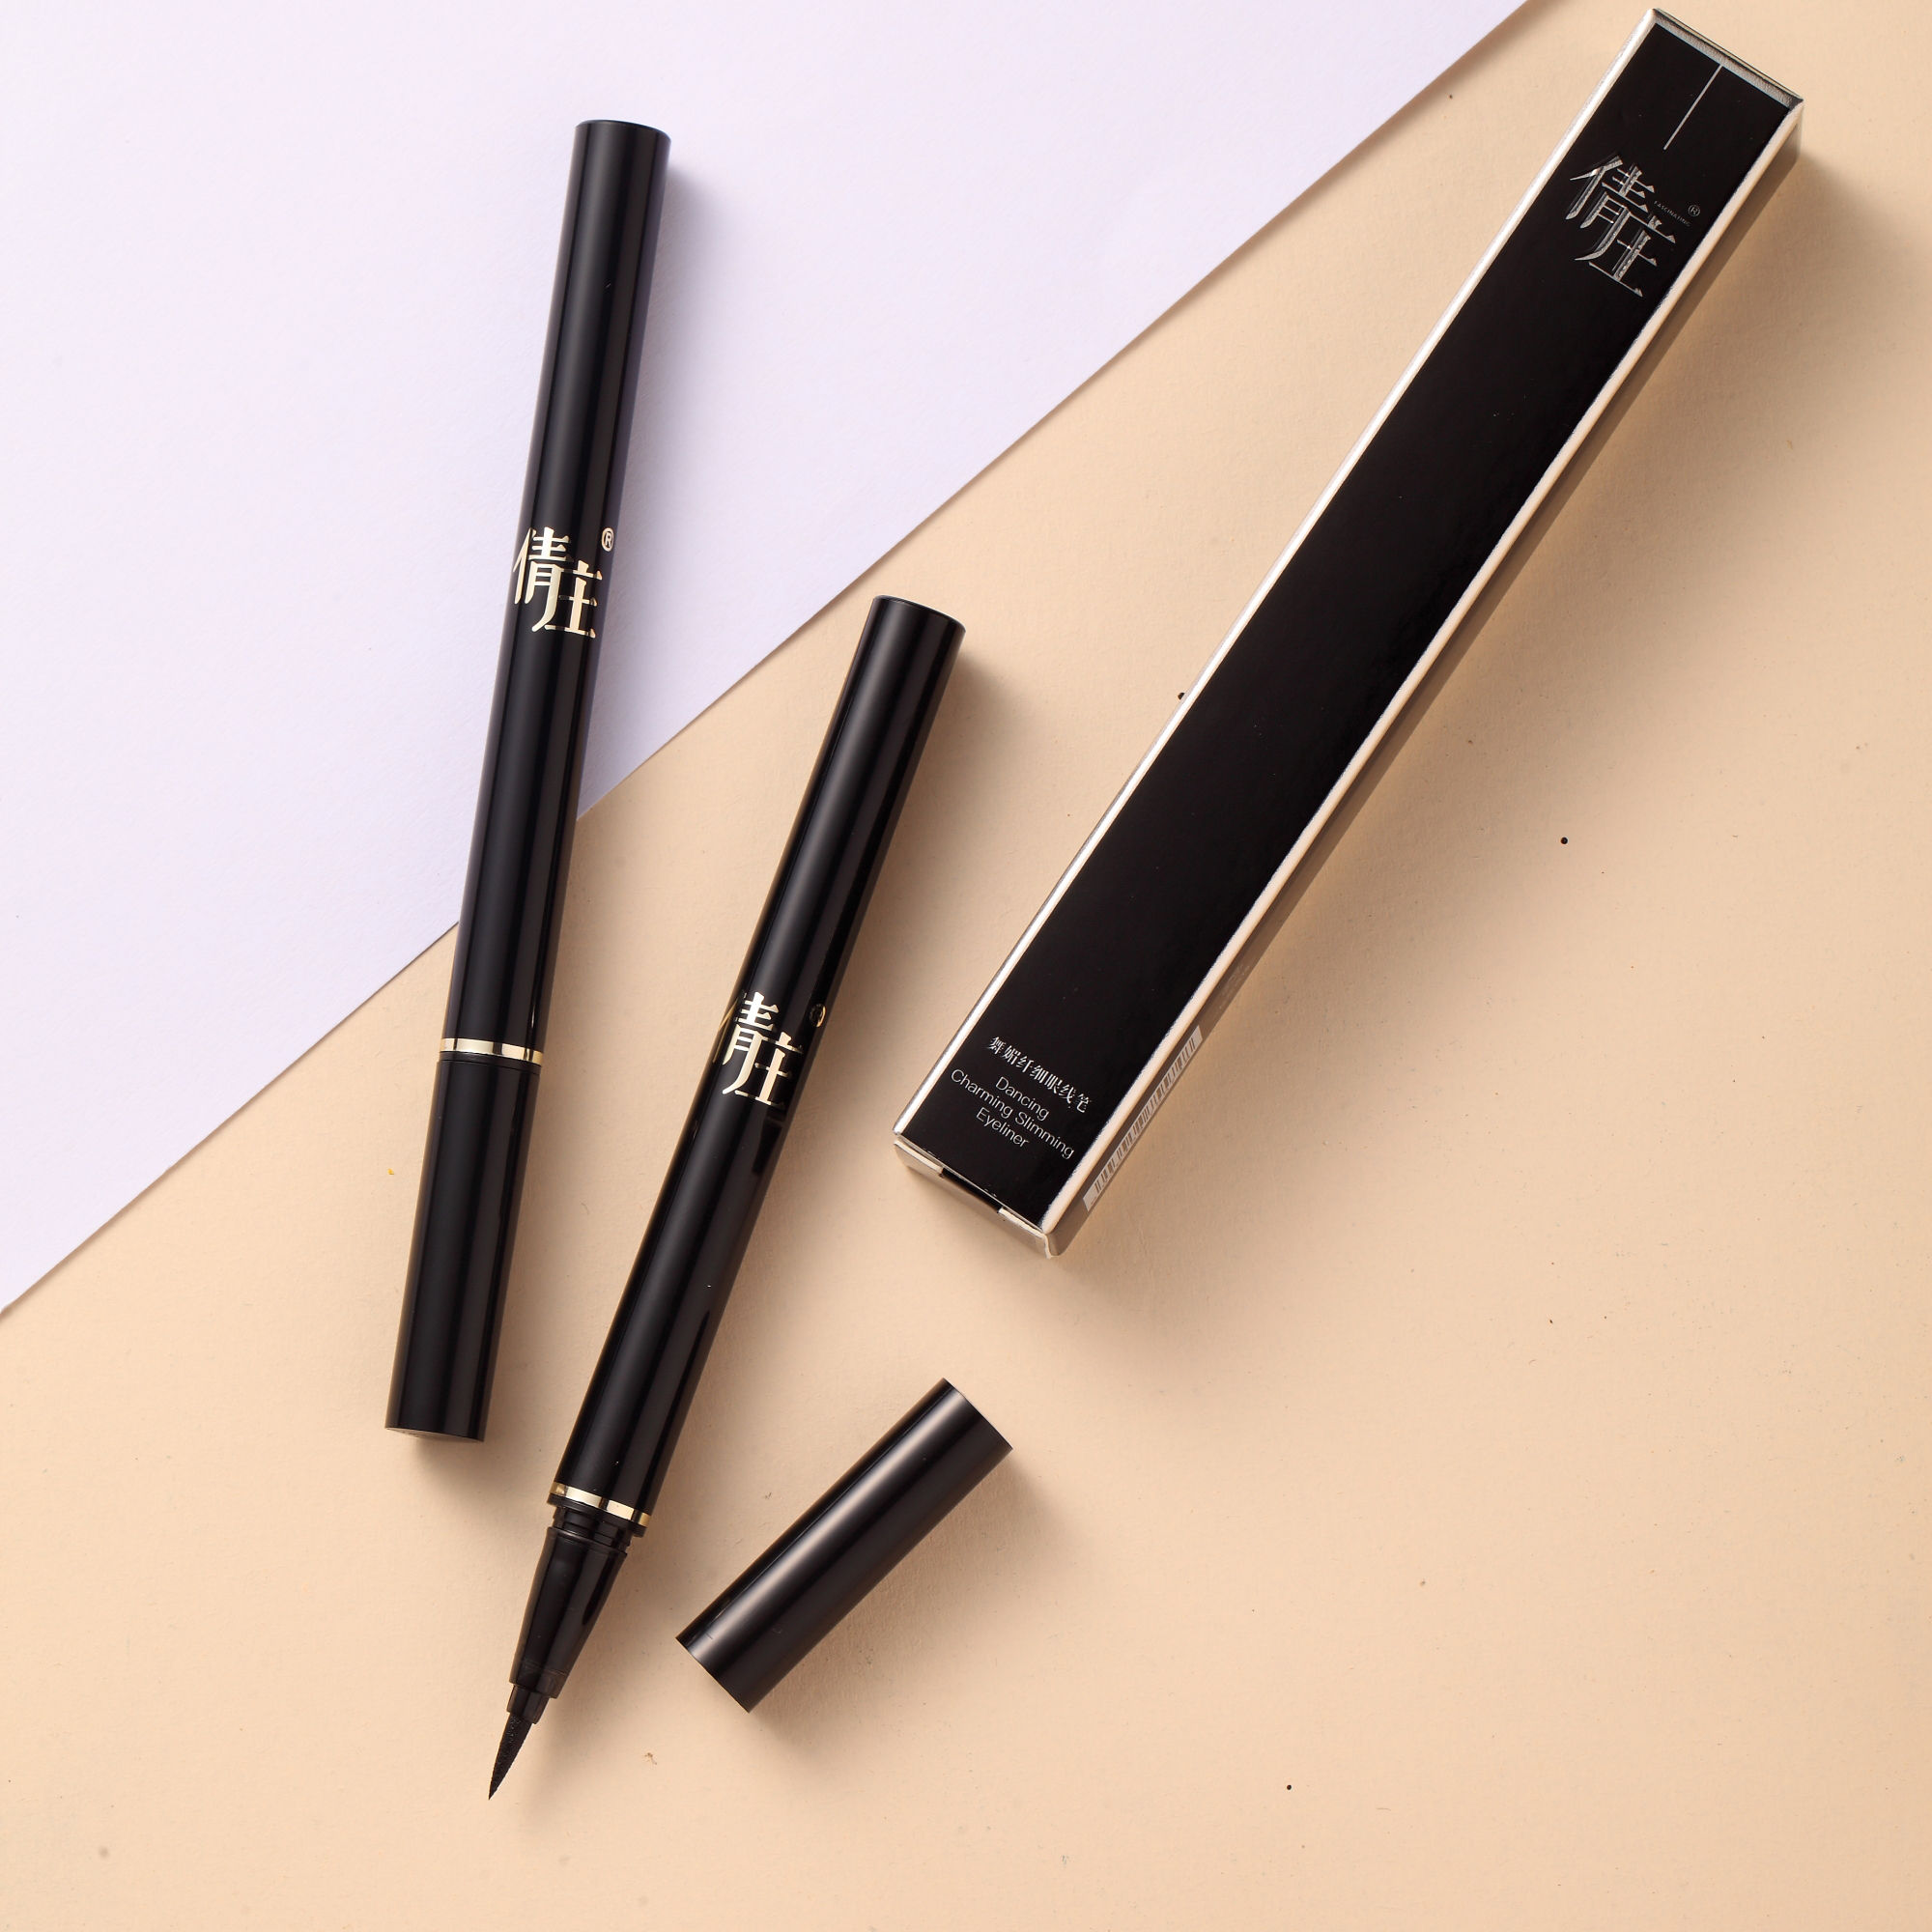 QZ Thin and clear non-makeup, water-proof eye-line pen